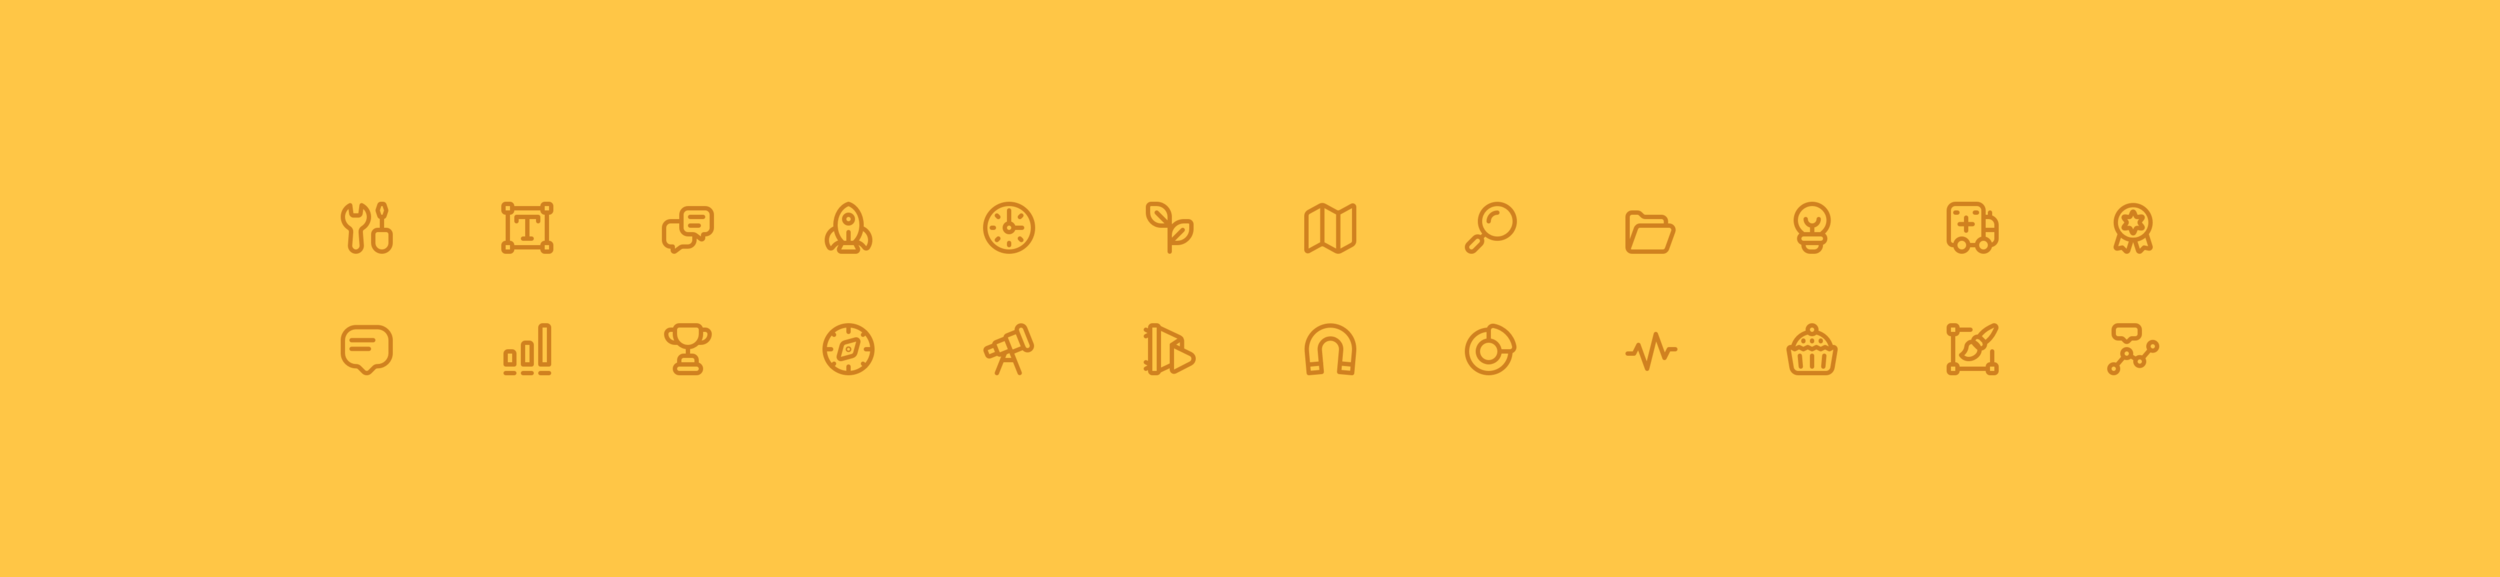 helpu-icons-yellow@2x.png